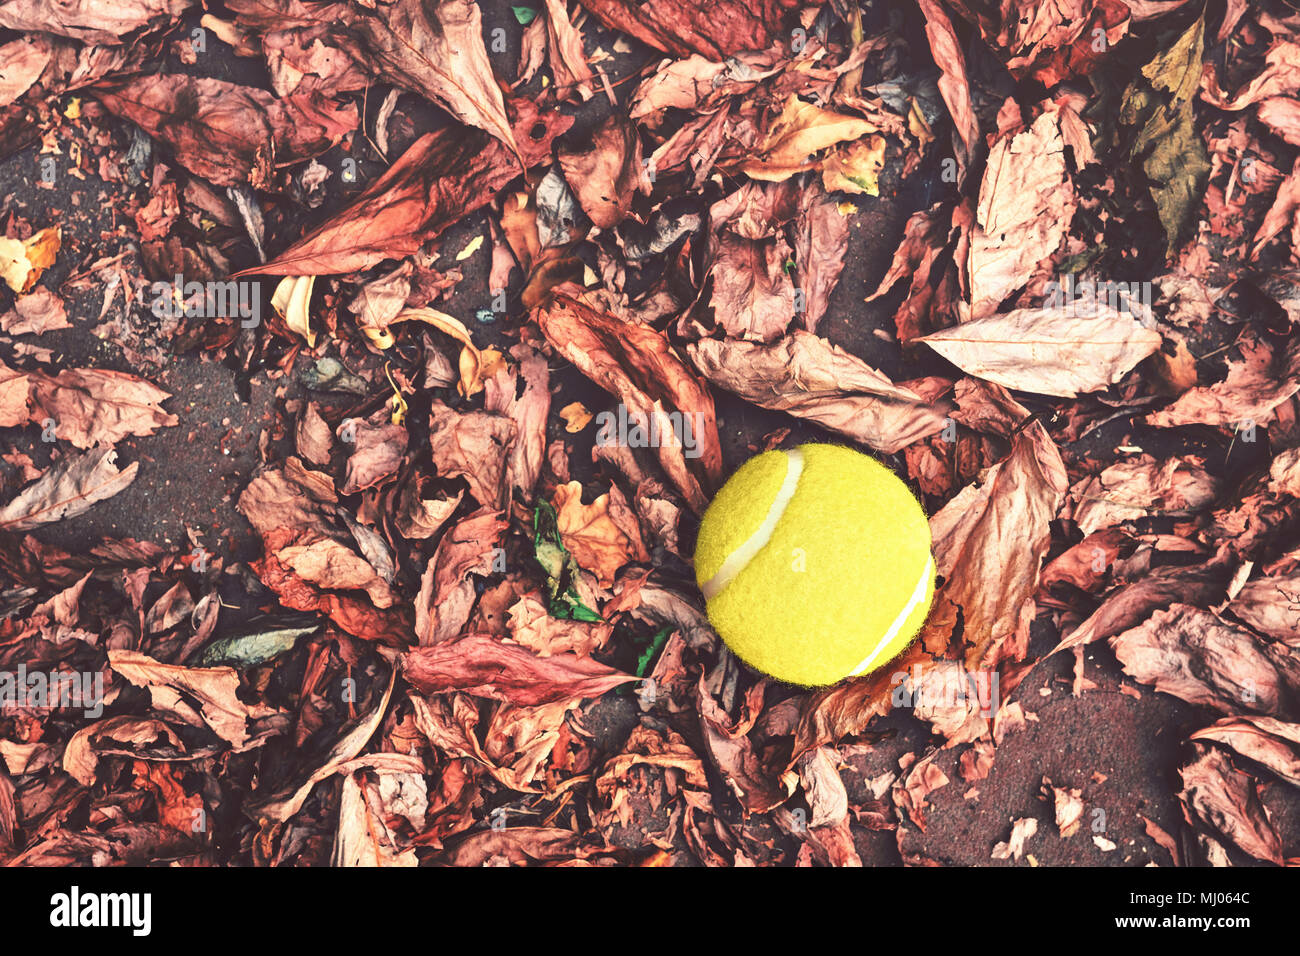 Top Down Vintage View Of An Old Yellow Tennis Ball Surrounded By Dry